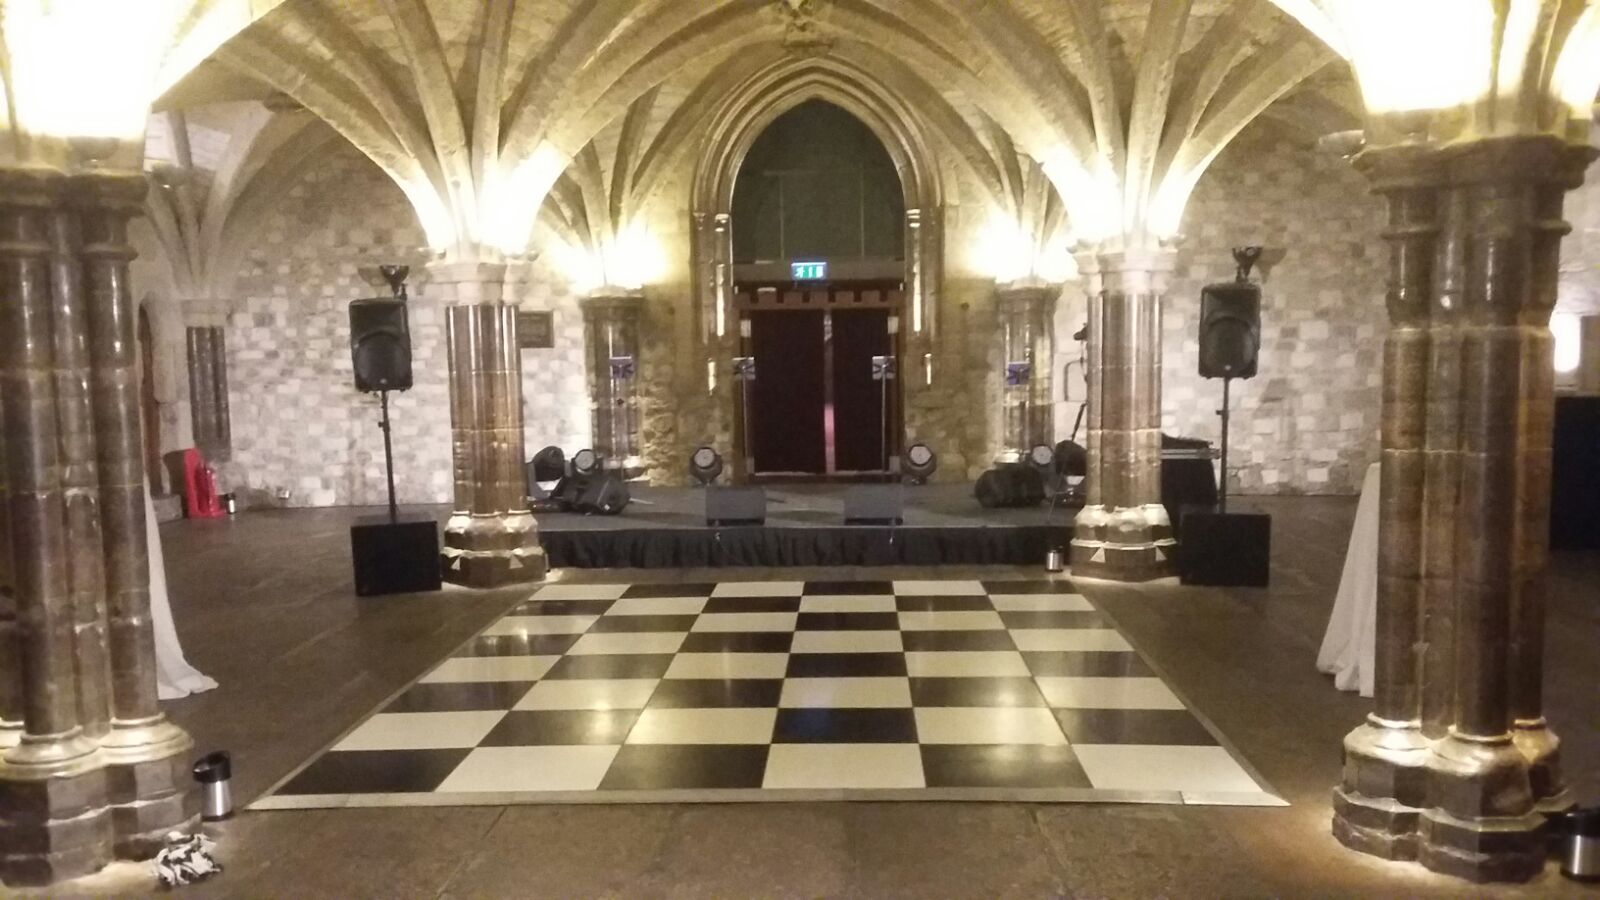 BW24 - Black White Chequered - Guildhall